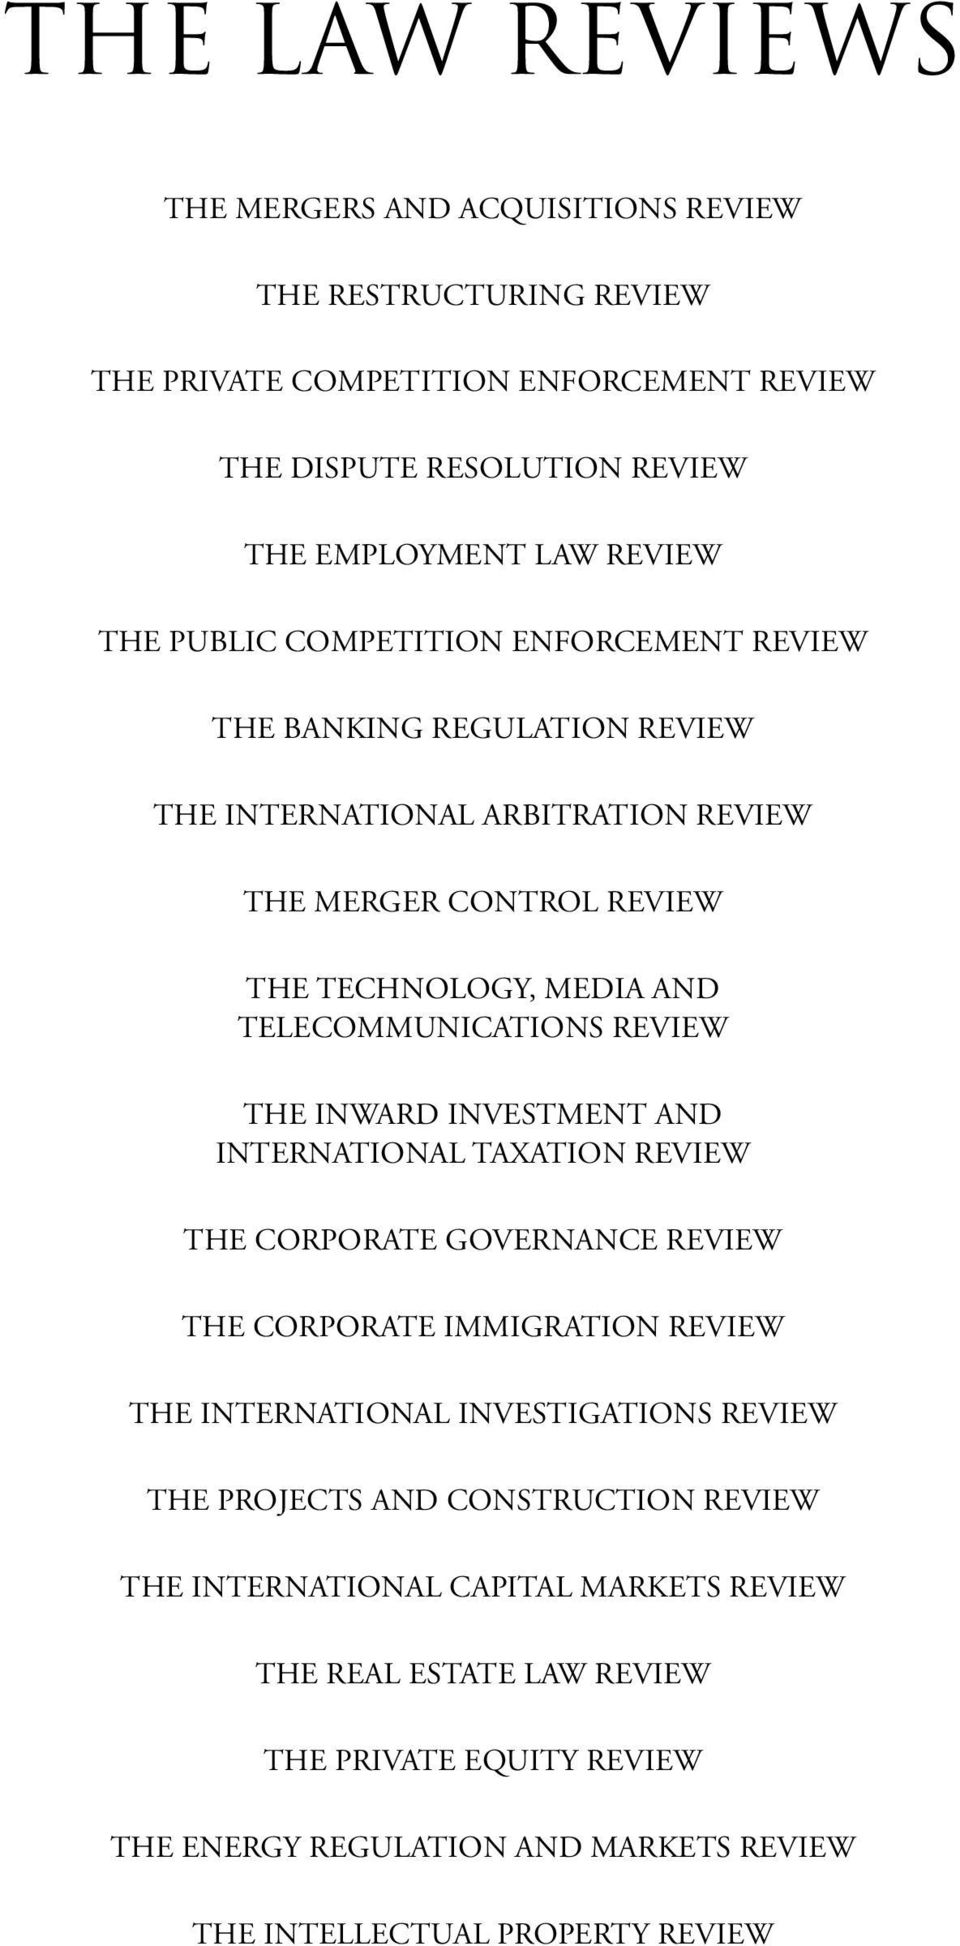 REVIEW THE INWARD INVESTMENT AND INTERNATIONAL TAXATION REVIEW THE CORPORATE GOVERNANCE REVIEW THE CORPORATE IMMIGRATION REVIEW THE INTERNATIONAL INVESTIGATIONS REVIEW THE PROJECTS